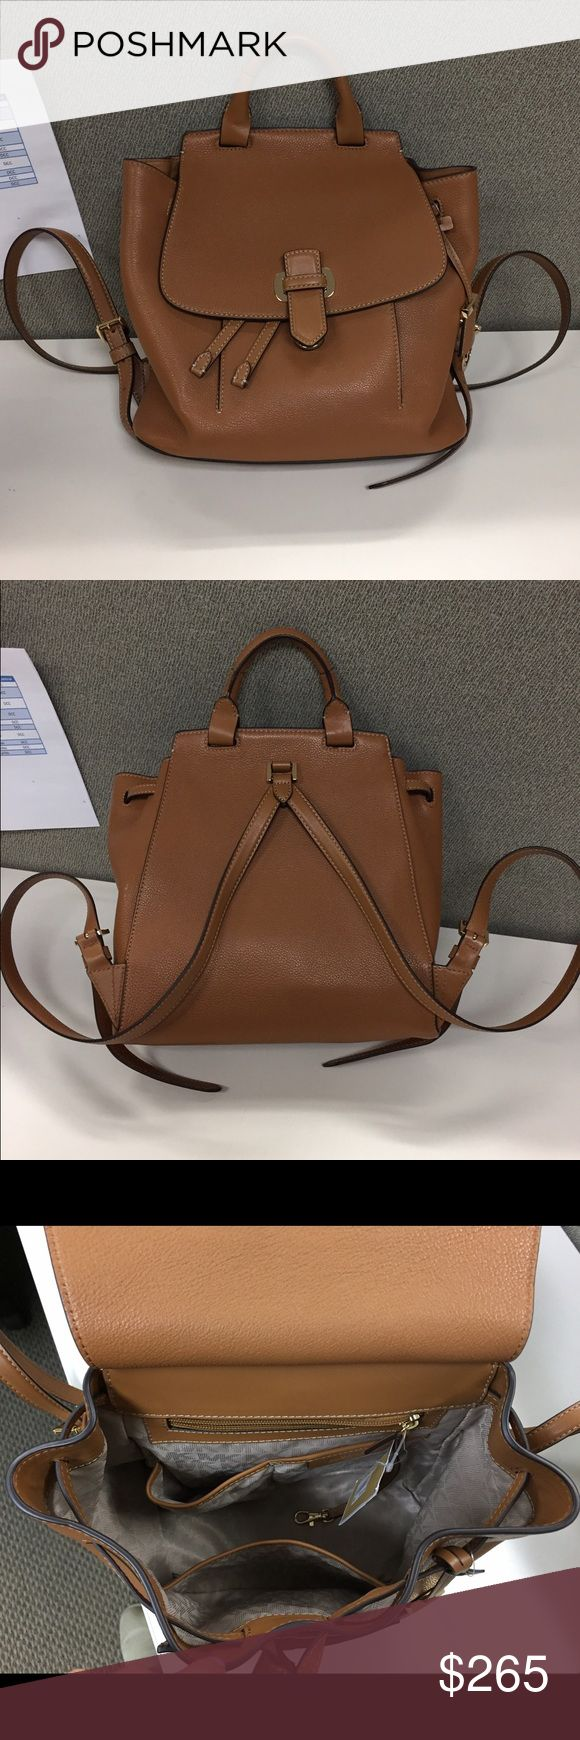 """Michael Kors Romy leather backpack- new with tag! The must have Romy Medium Backpack from MICHAEL Michael Kors comes elegantly crafted in luxe pebble leather with slender, adjustable straps. Bought a different backpack that I like more. 13"""" W x 11-1/2"""" H x 3-1/2"""" D Interior features 1 zip pocket, 2 utility pockets, 1 slip pocket and key clip 14-16""""L adjustable backpack straps Push-lock and drawstring closures Exterior features gleaming hardware and 1 front slip pocket Small pebble leather…"""